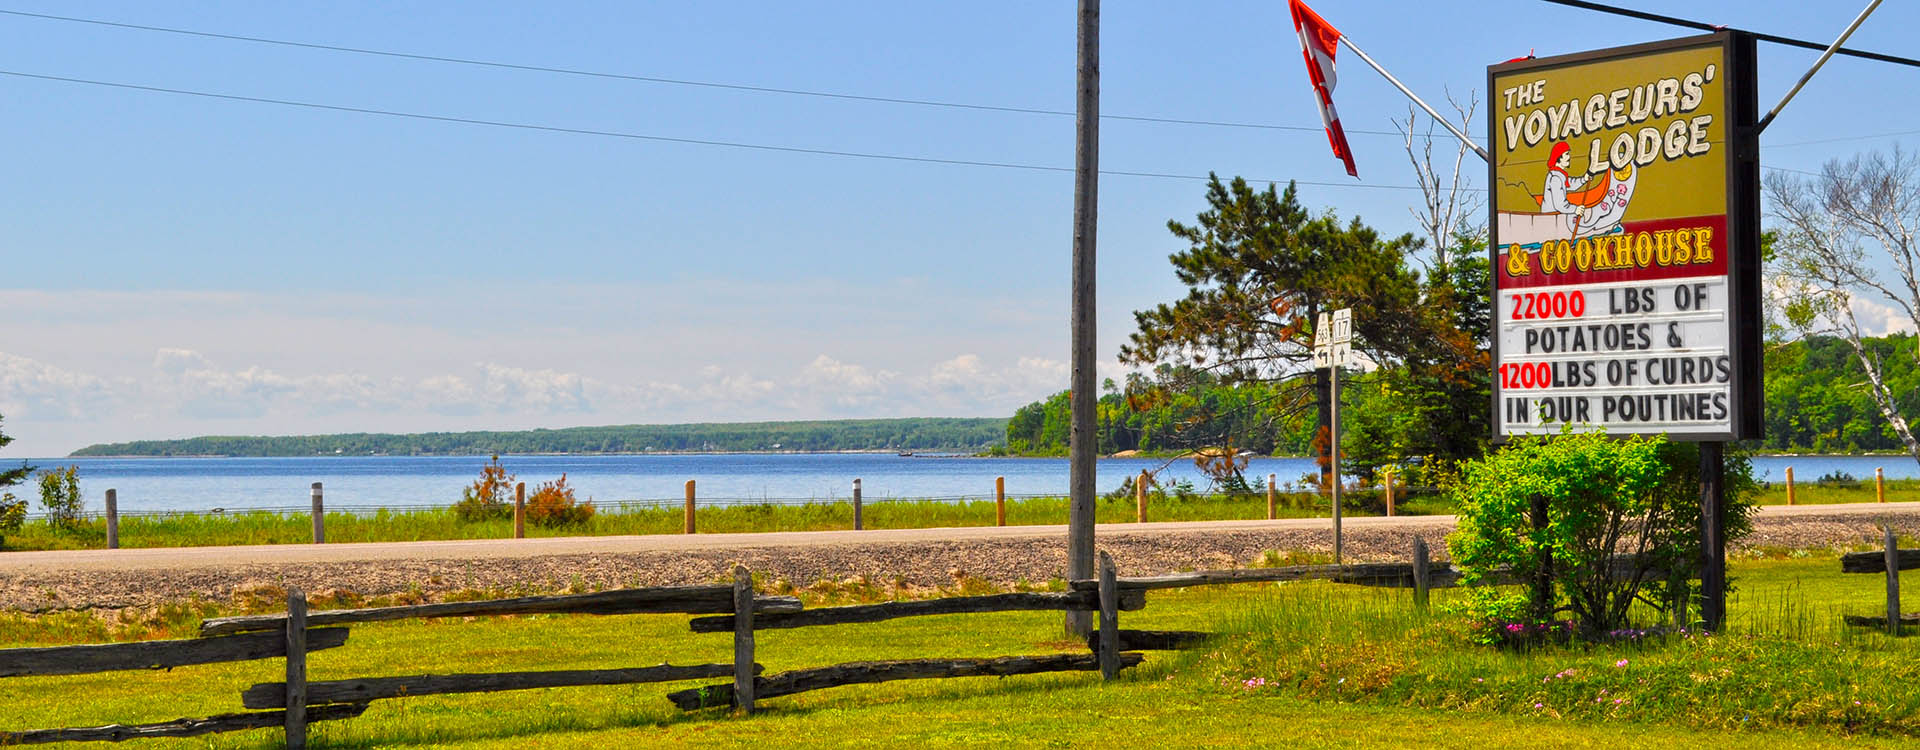 voyageurs-lodge-header-1